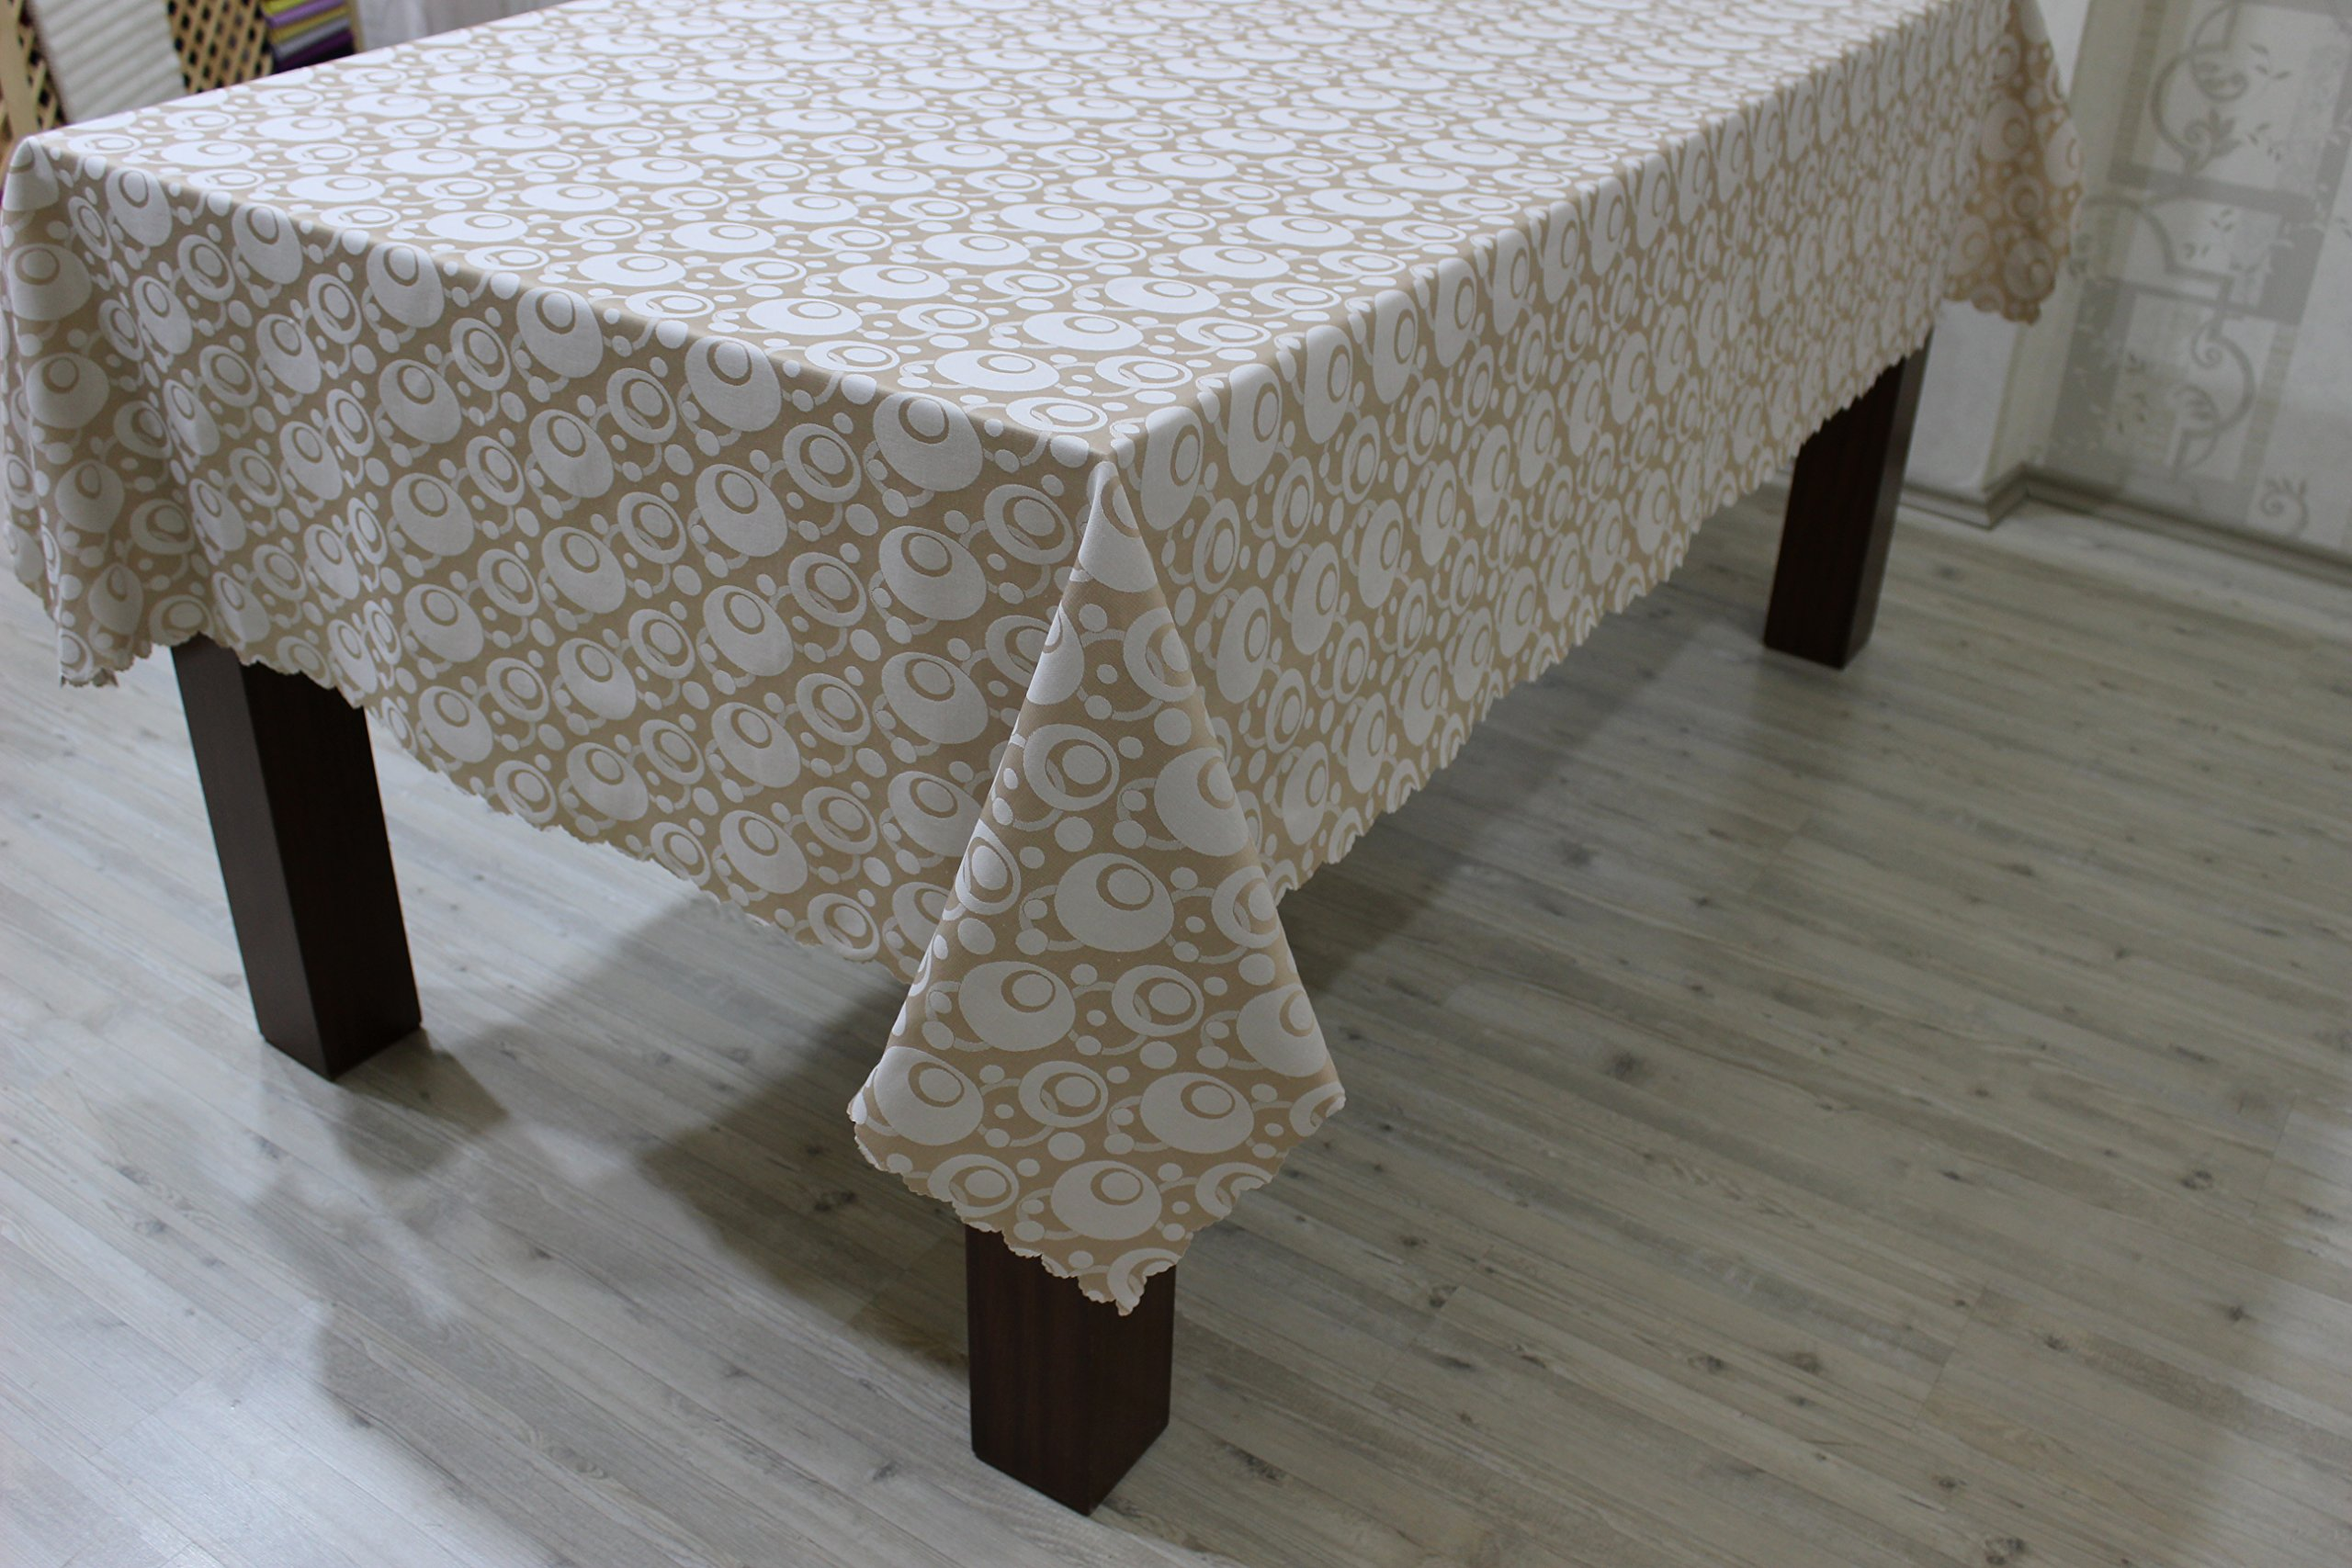 Waterproof Polycotton Turkish Tablecloth,Table Cover For Family ,Christmas and Thanksgiving Dinners,Weddings,Hotels and Restaurants,Tablecloth For Regular Use.Olips Design (Cappucino, 60''x104'')